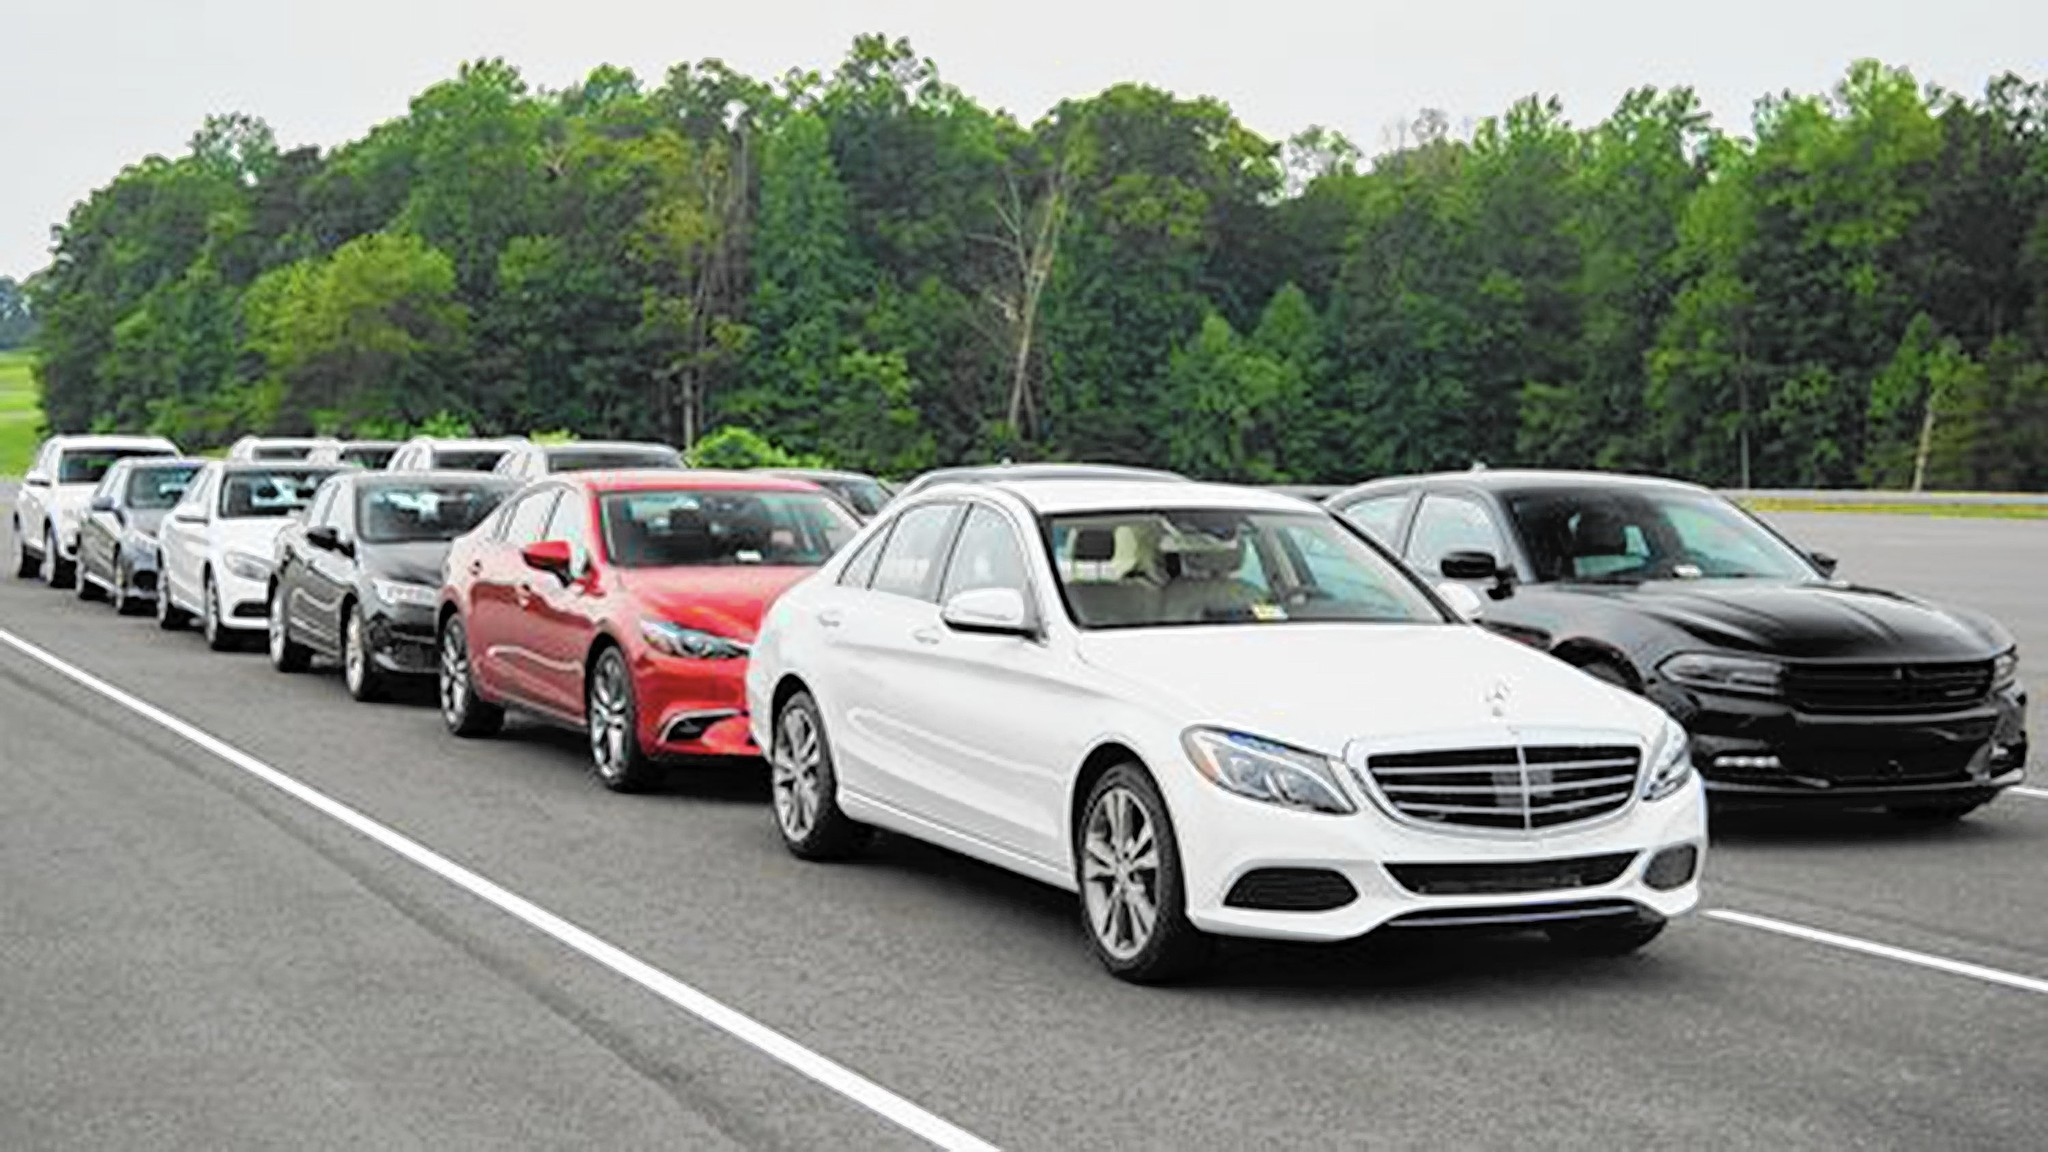 Insurance group recommends safest used cars for teens chicago tribune